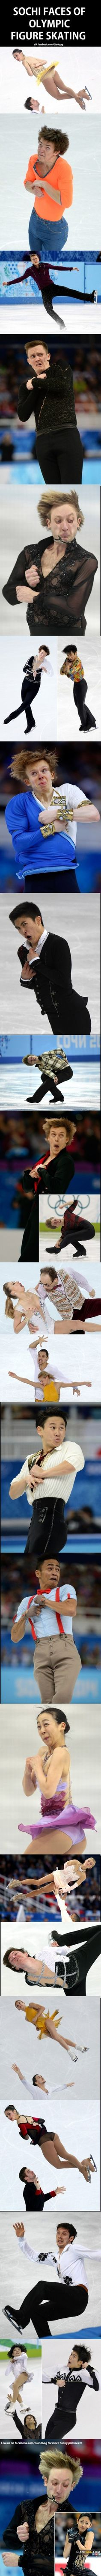 Sochi Faces Of Olympic Figure Skating,  Click the link to view today's funniest pictures!